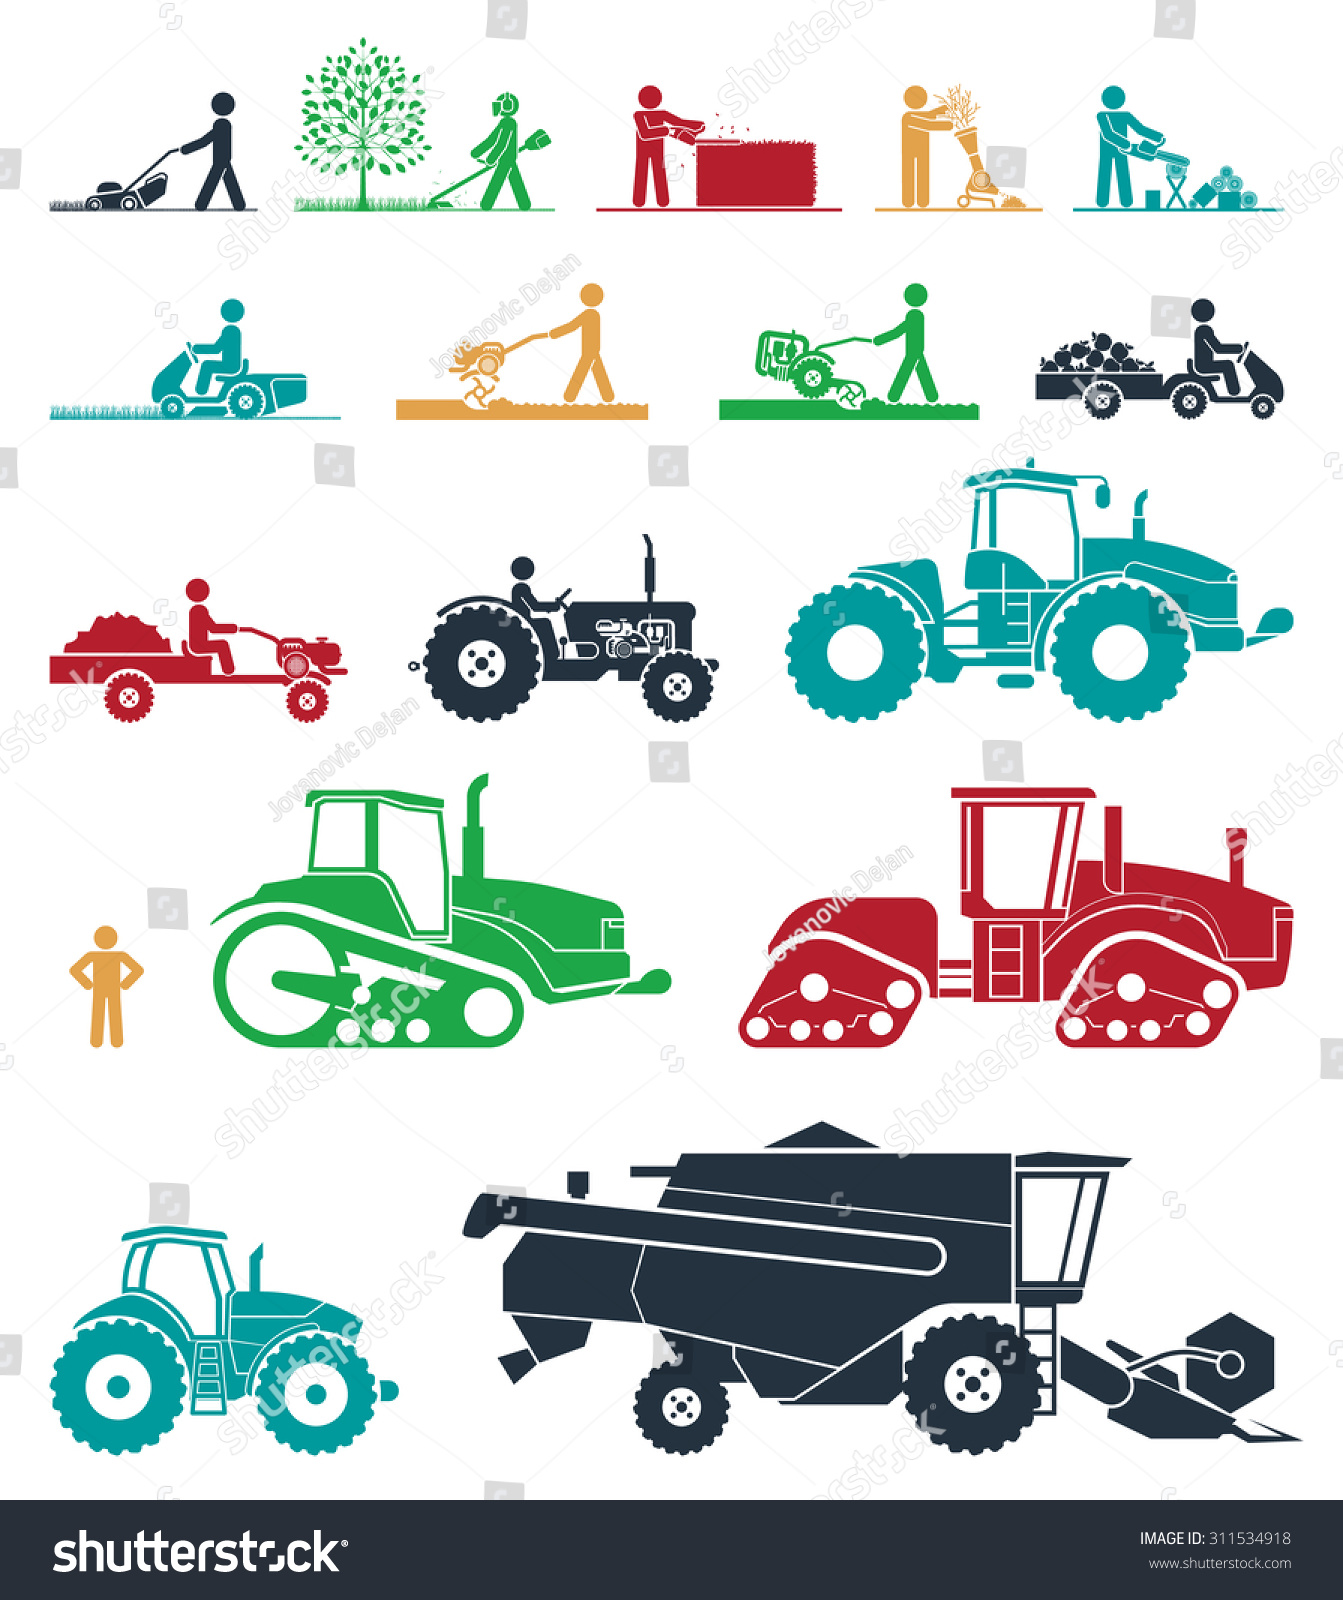 Set different types agricultural vehicles gardening stock for Different tools and equipment in horticulture